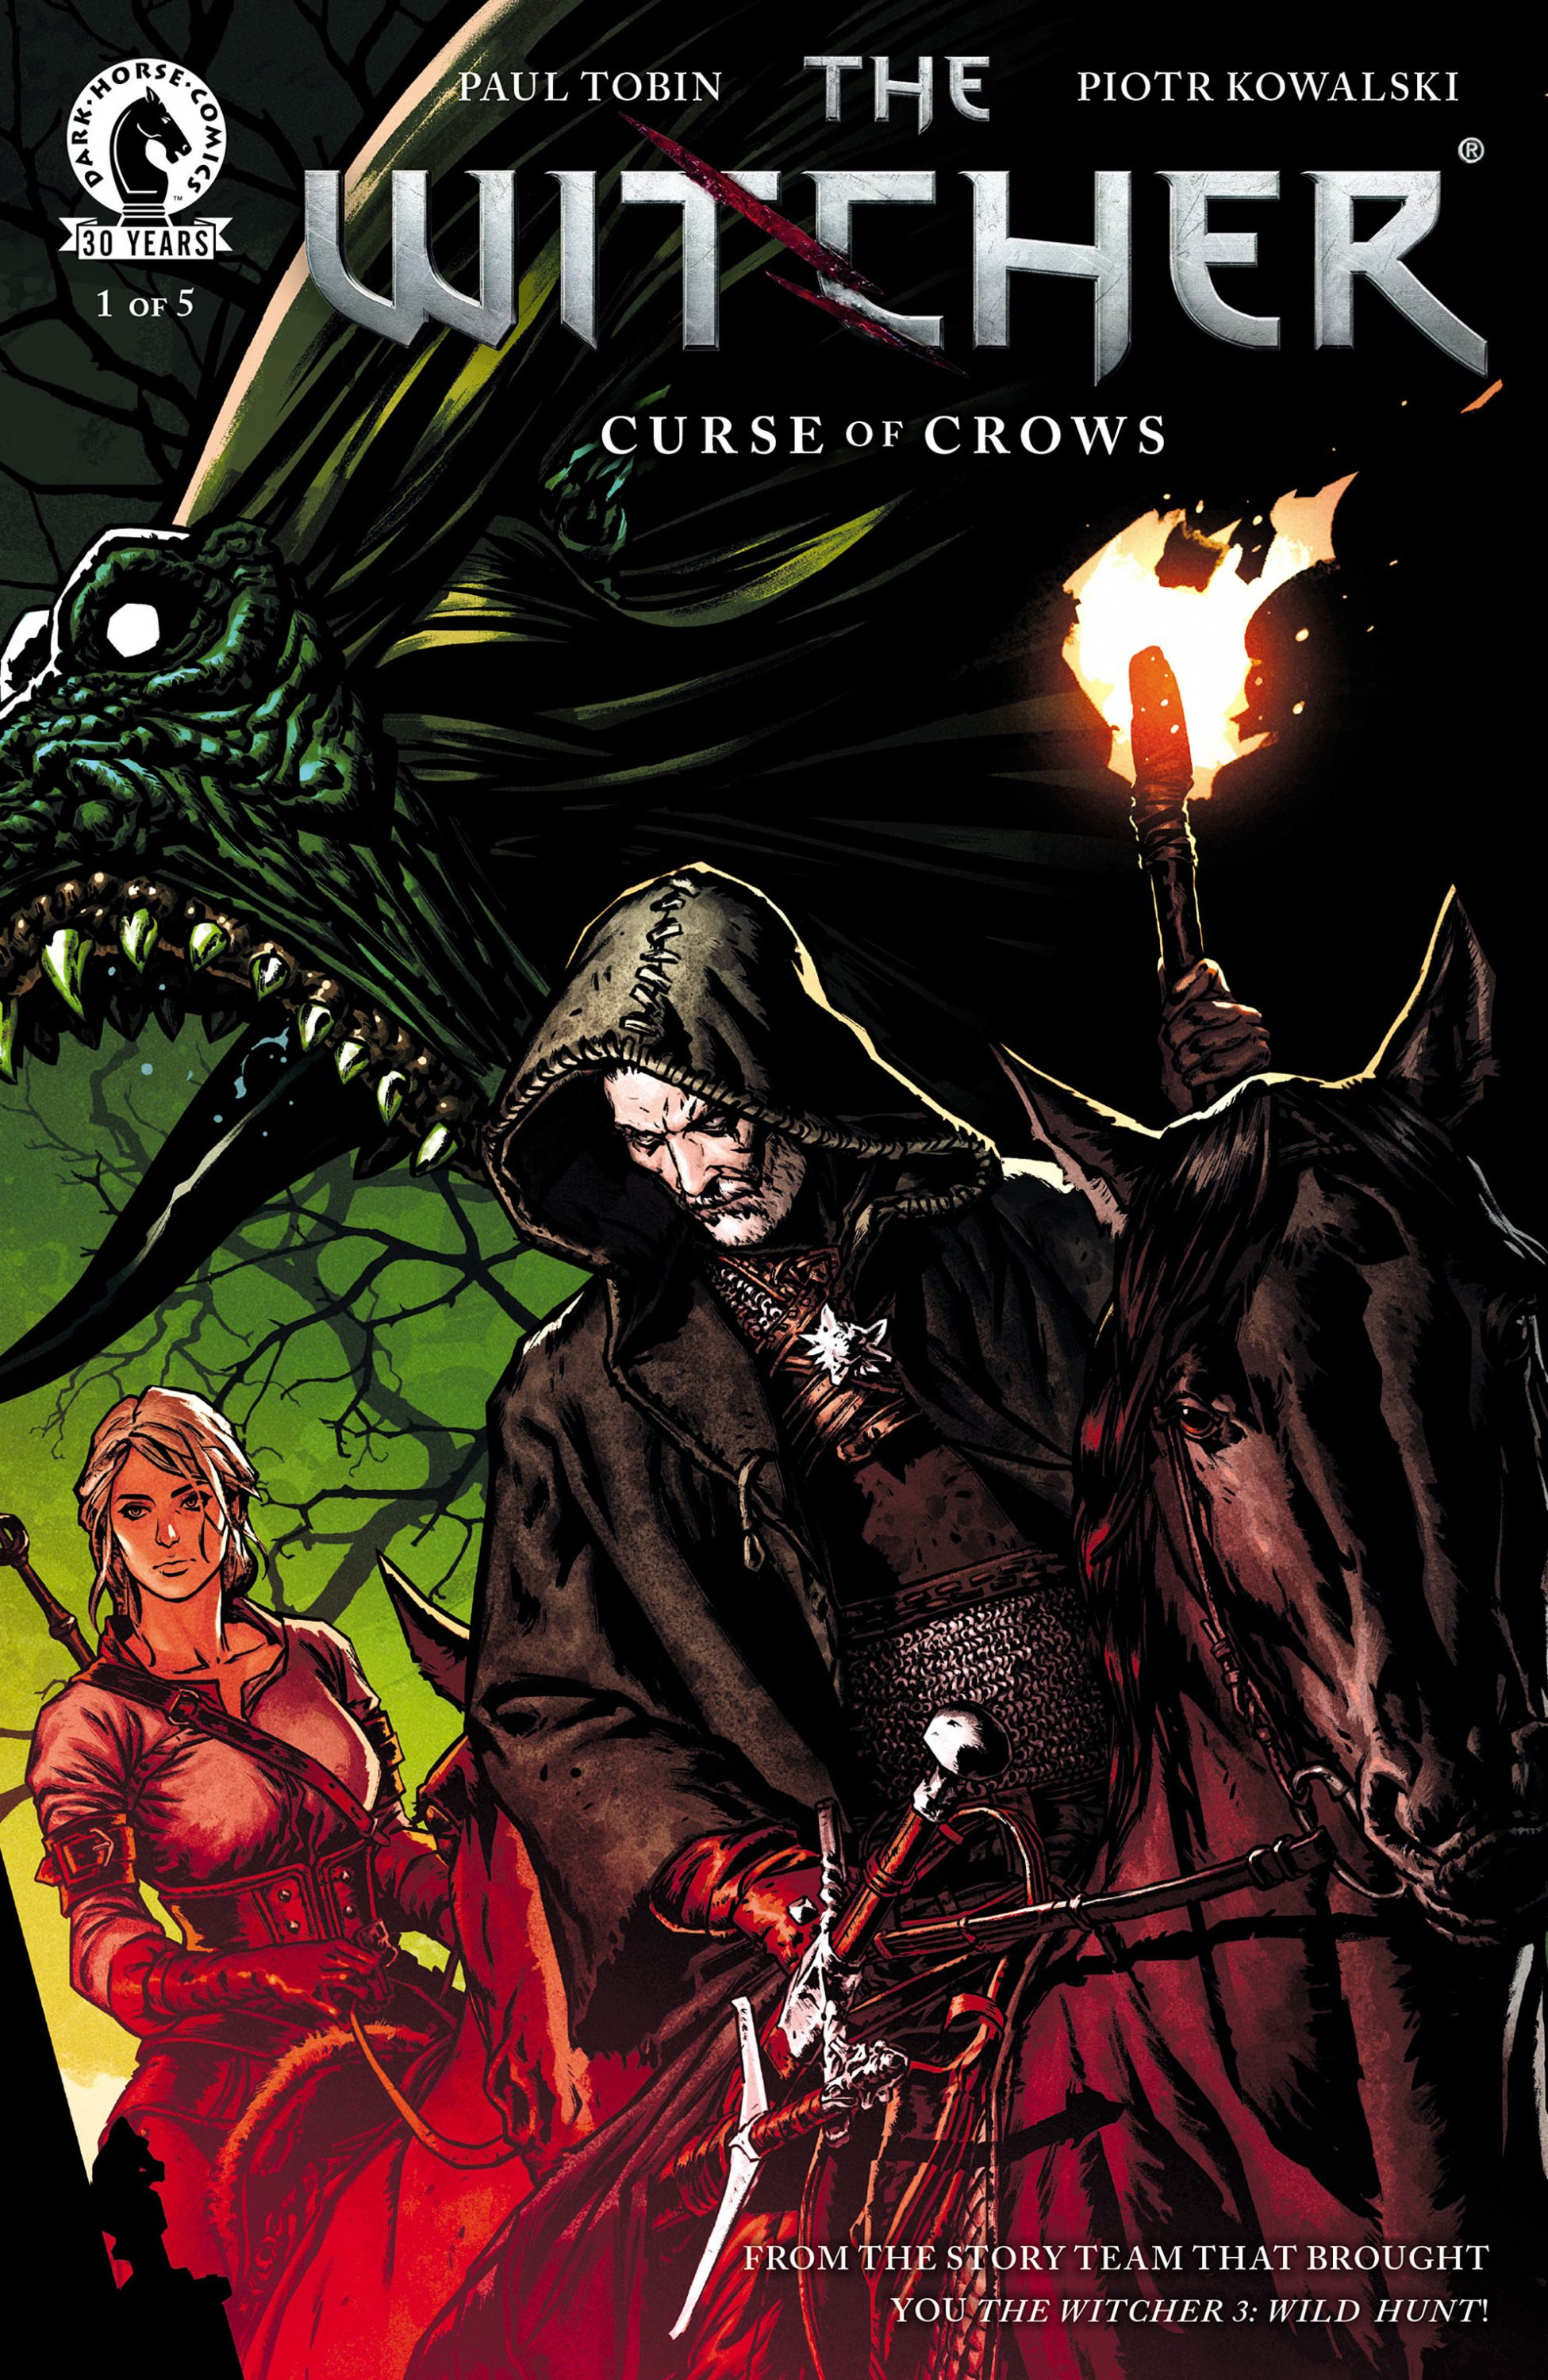 The Witcher - Curse of Crows 001 (August 2016)